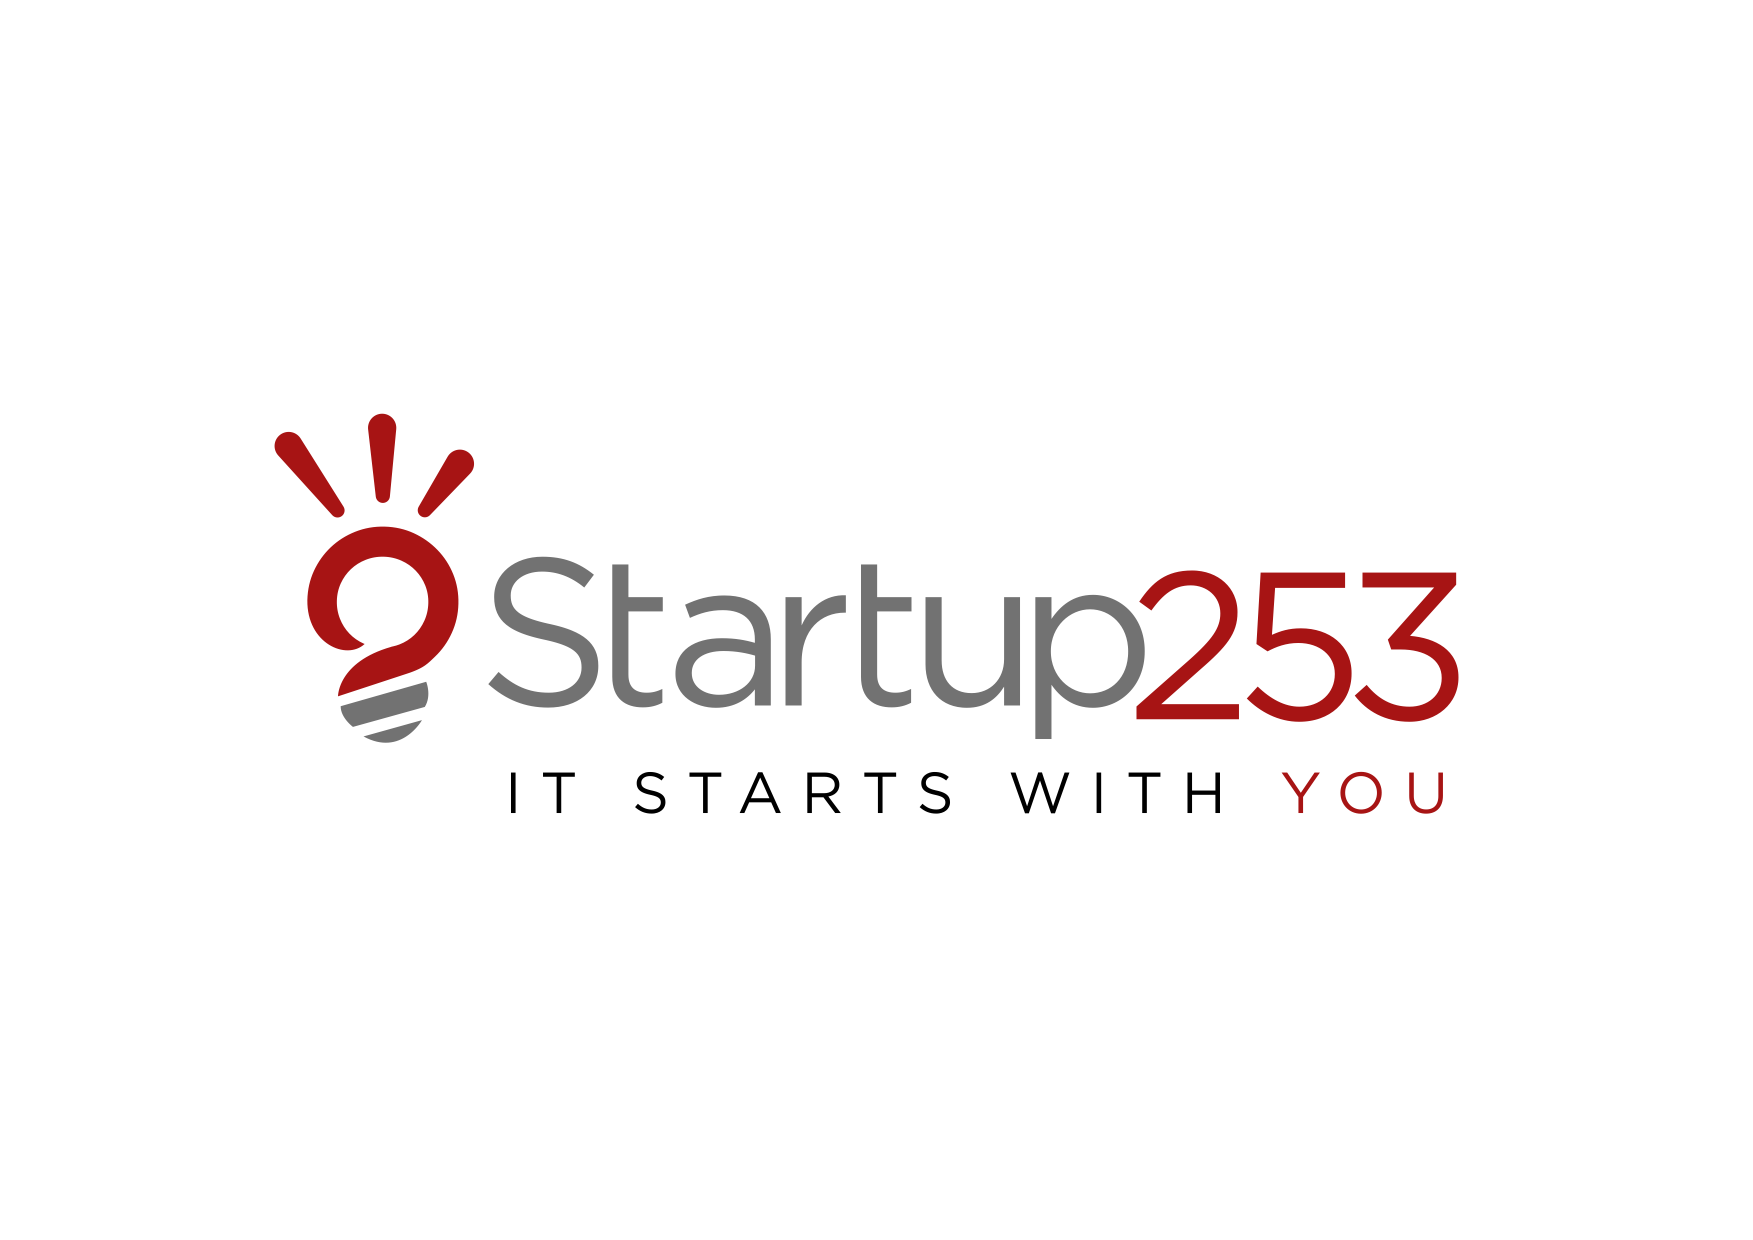 startup253.png